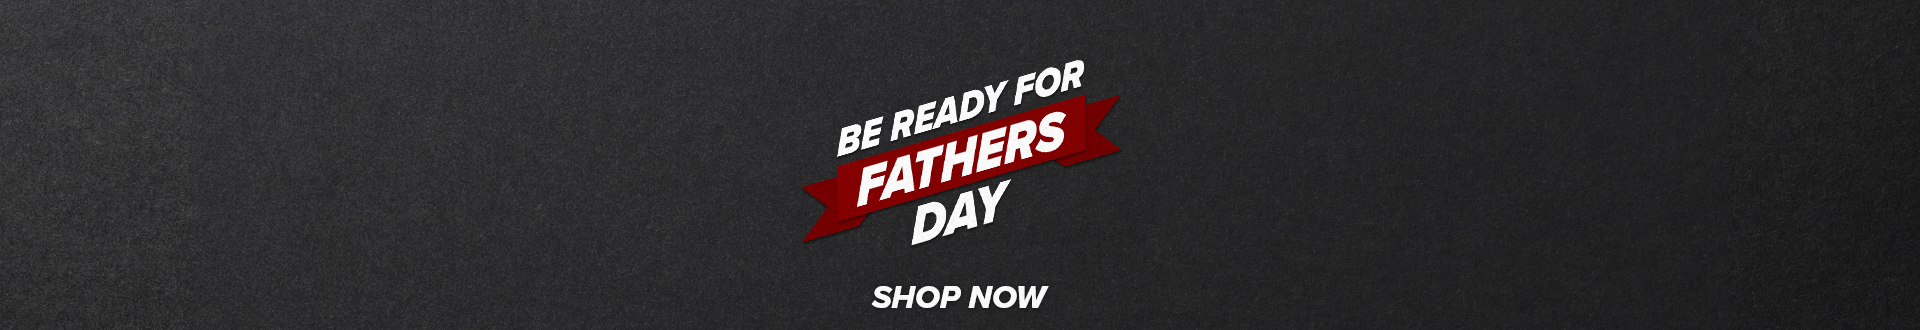 Get inspiration for gift ideas this Father's day, get them something they really want.